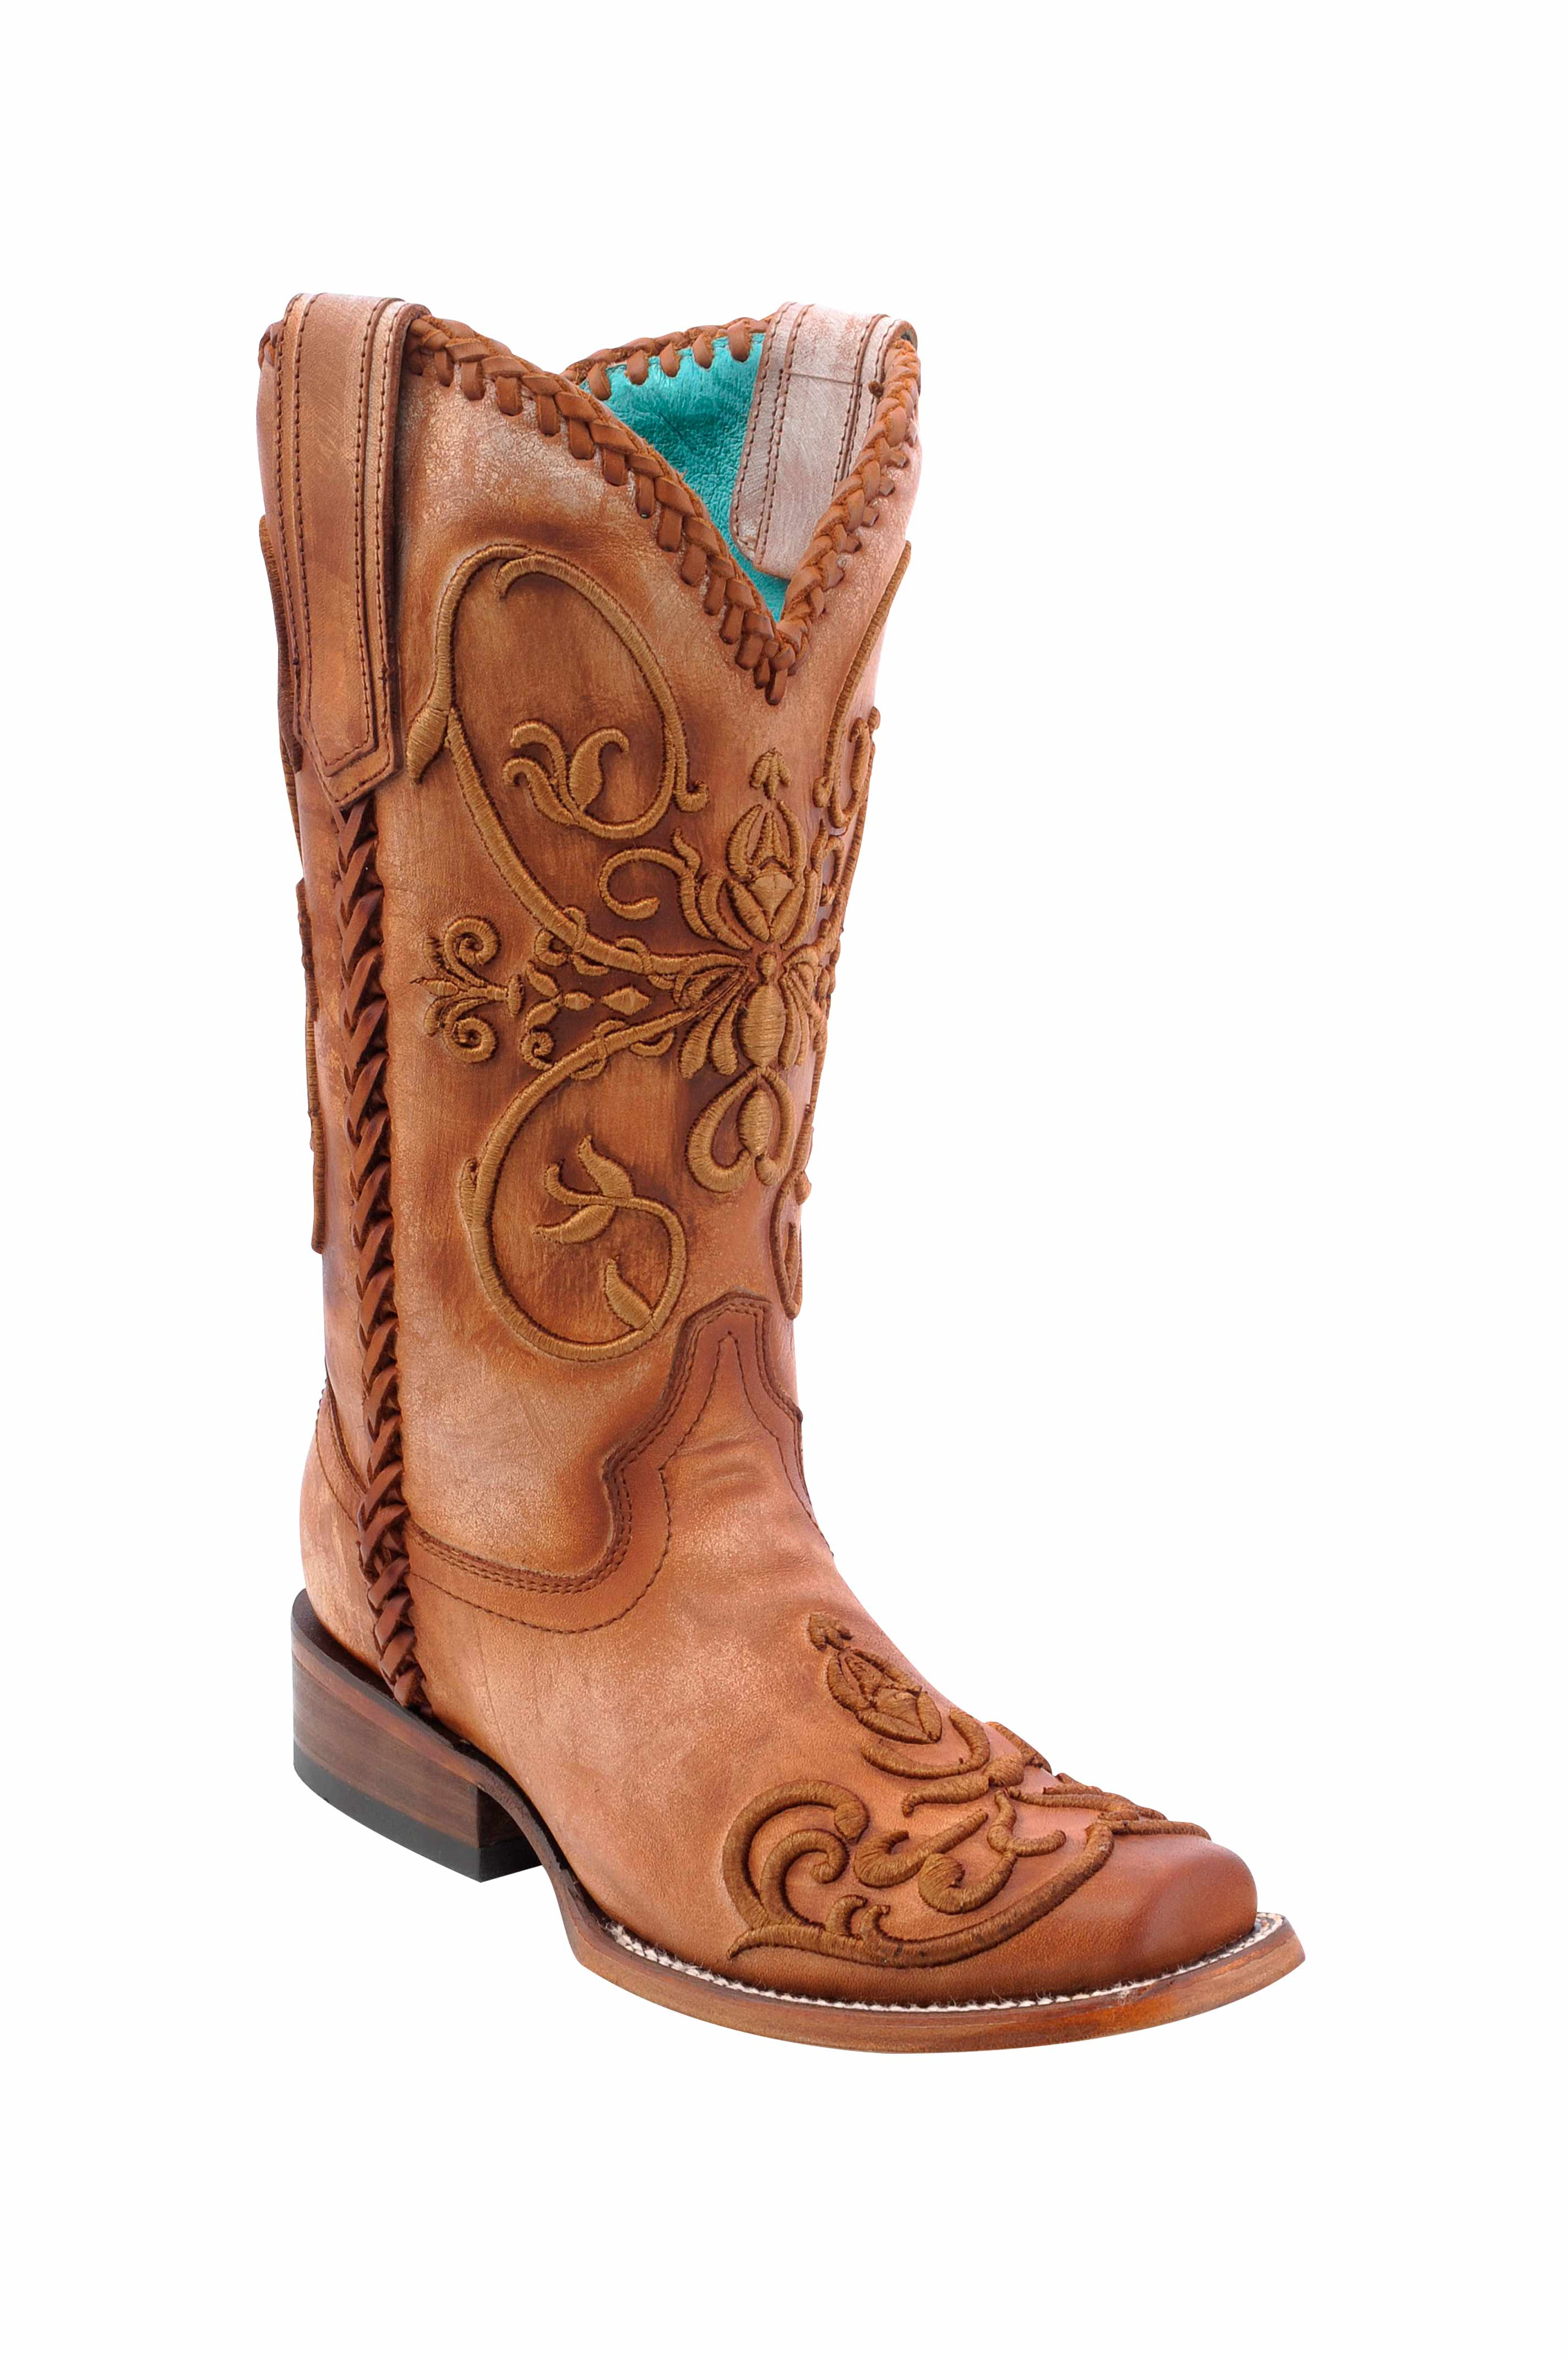 Ladies Corral Tan Whip Stitch Boots N Britches